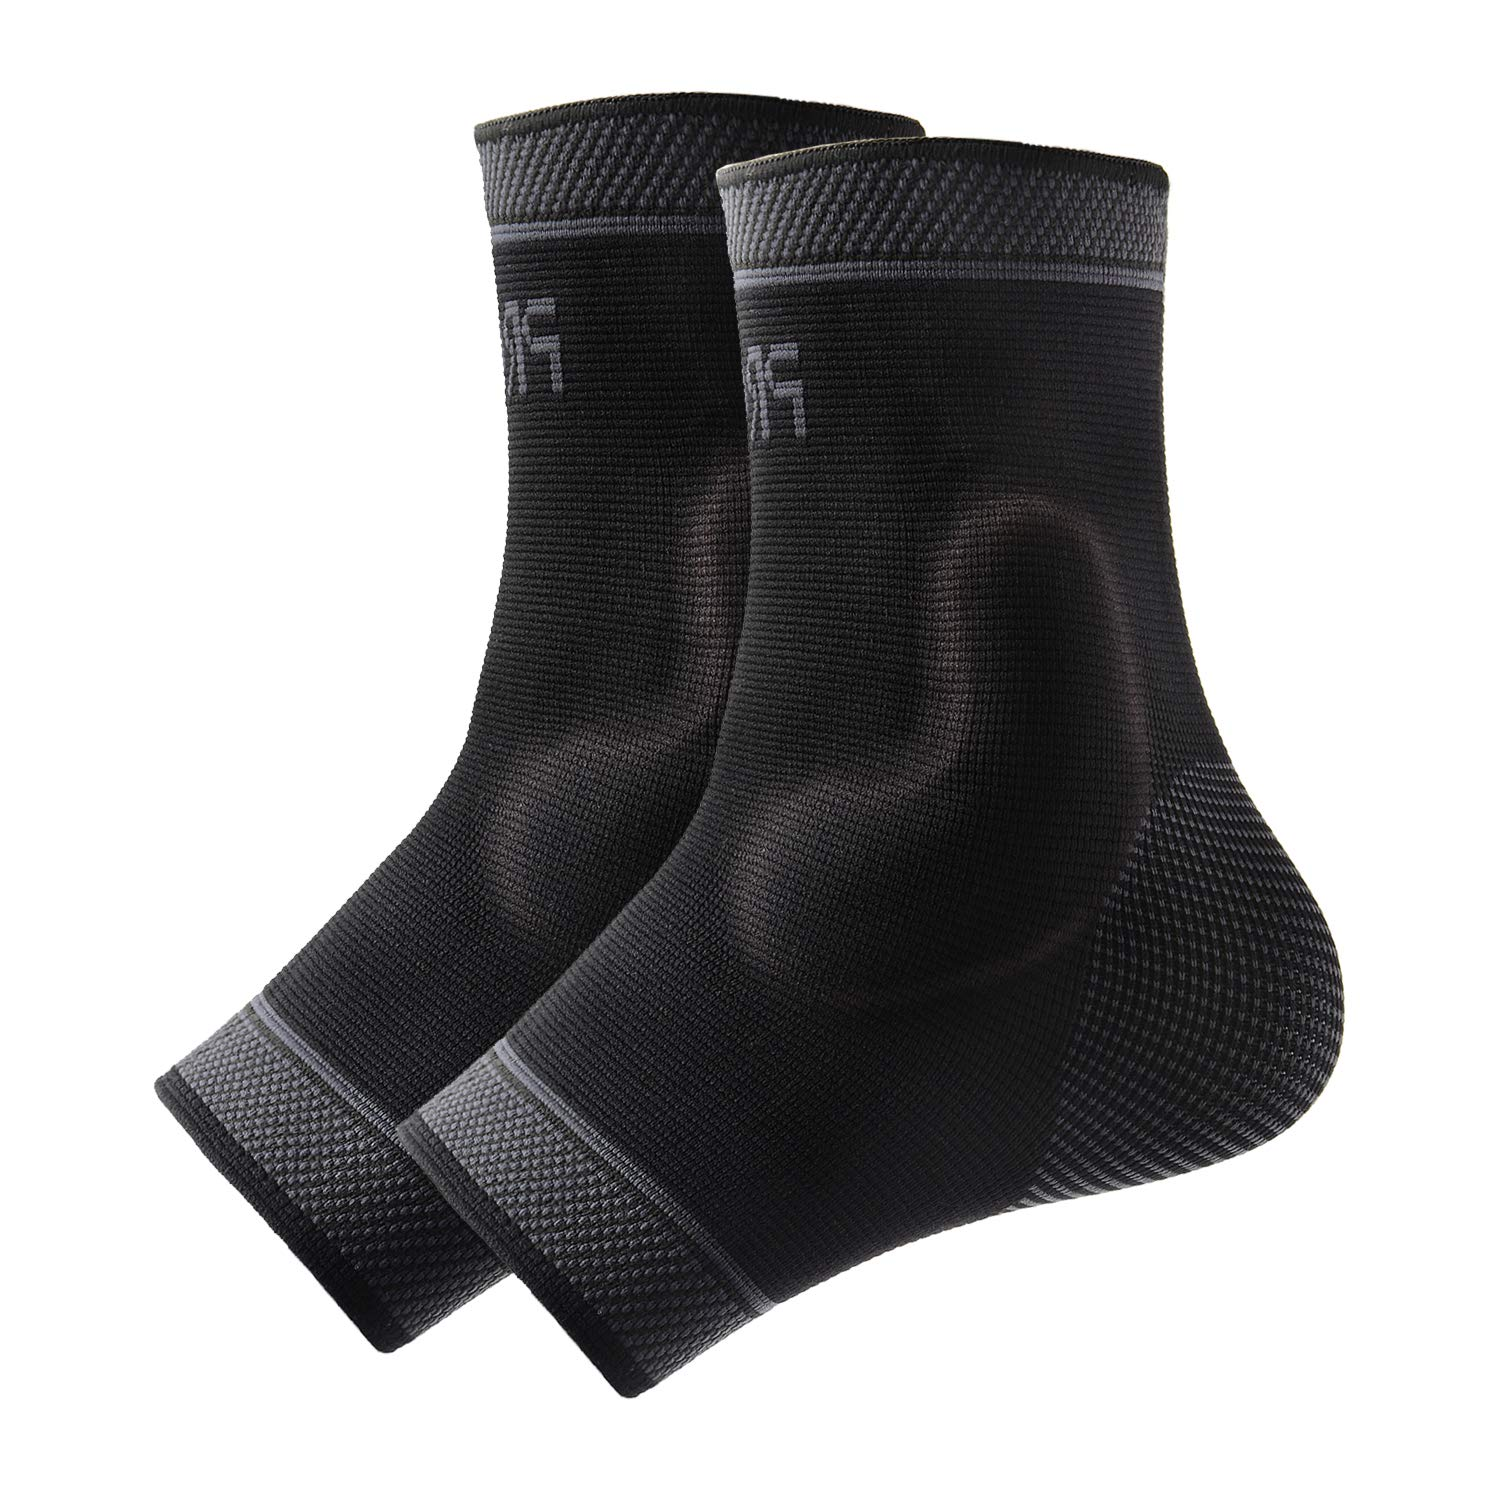 Protle Foot Socks Ankle Brace Compression Support Sleeve with Silicone Gel - Boosts Recovery from Joint Pain, Sprain, Plantar Fasciitis, Heel Spur, Achilles tendonitis (Medium, Pair-Black)